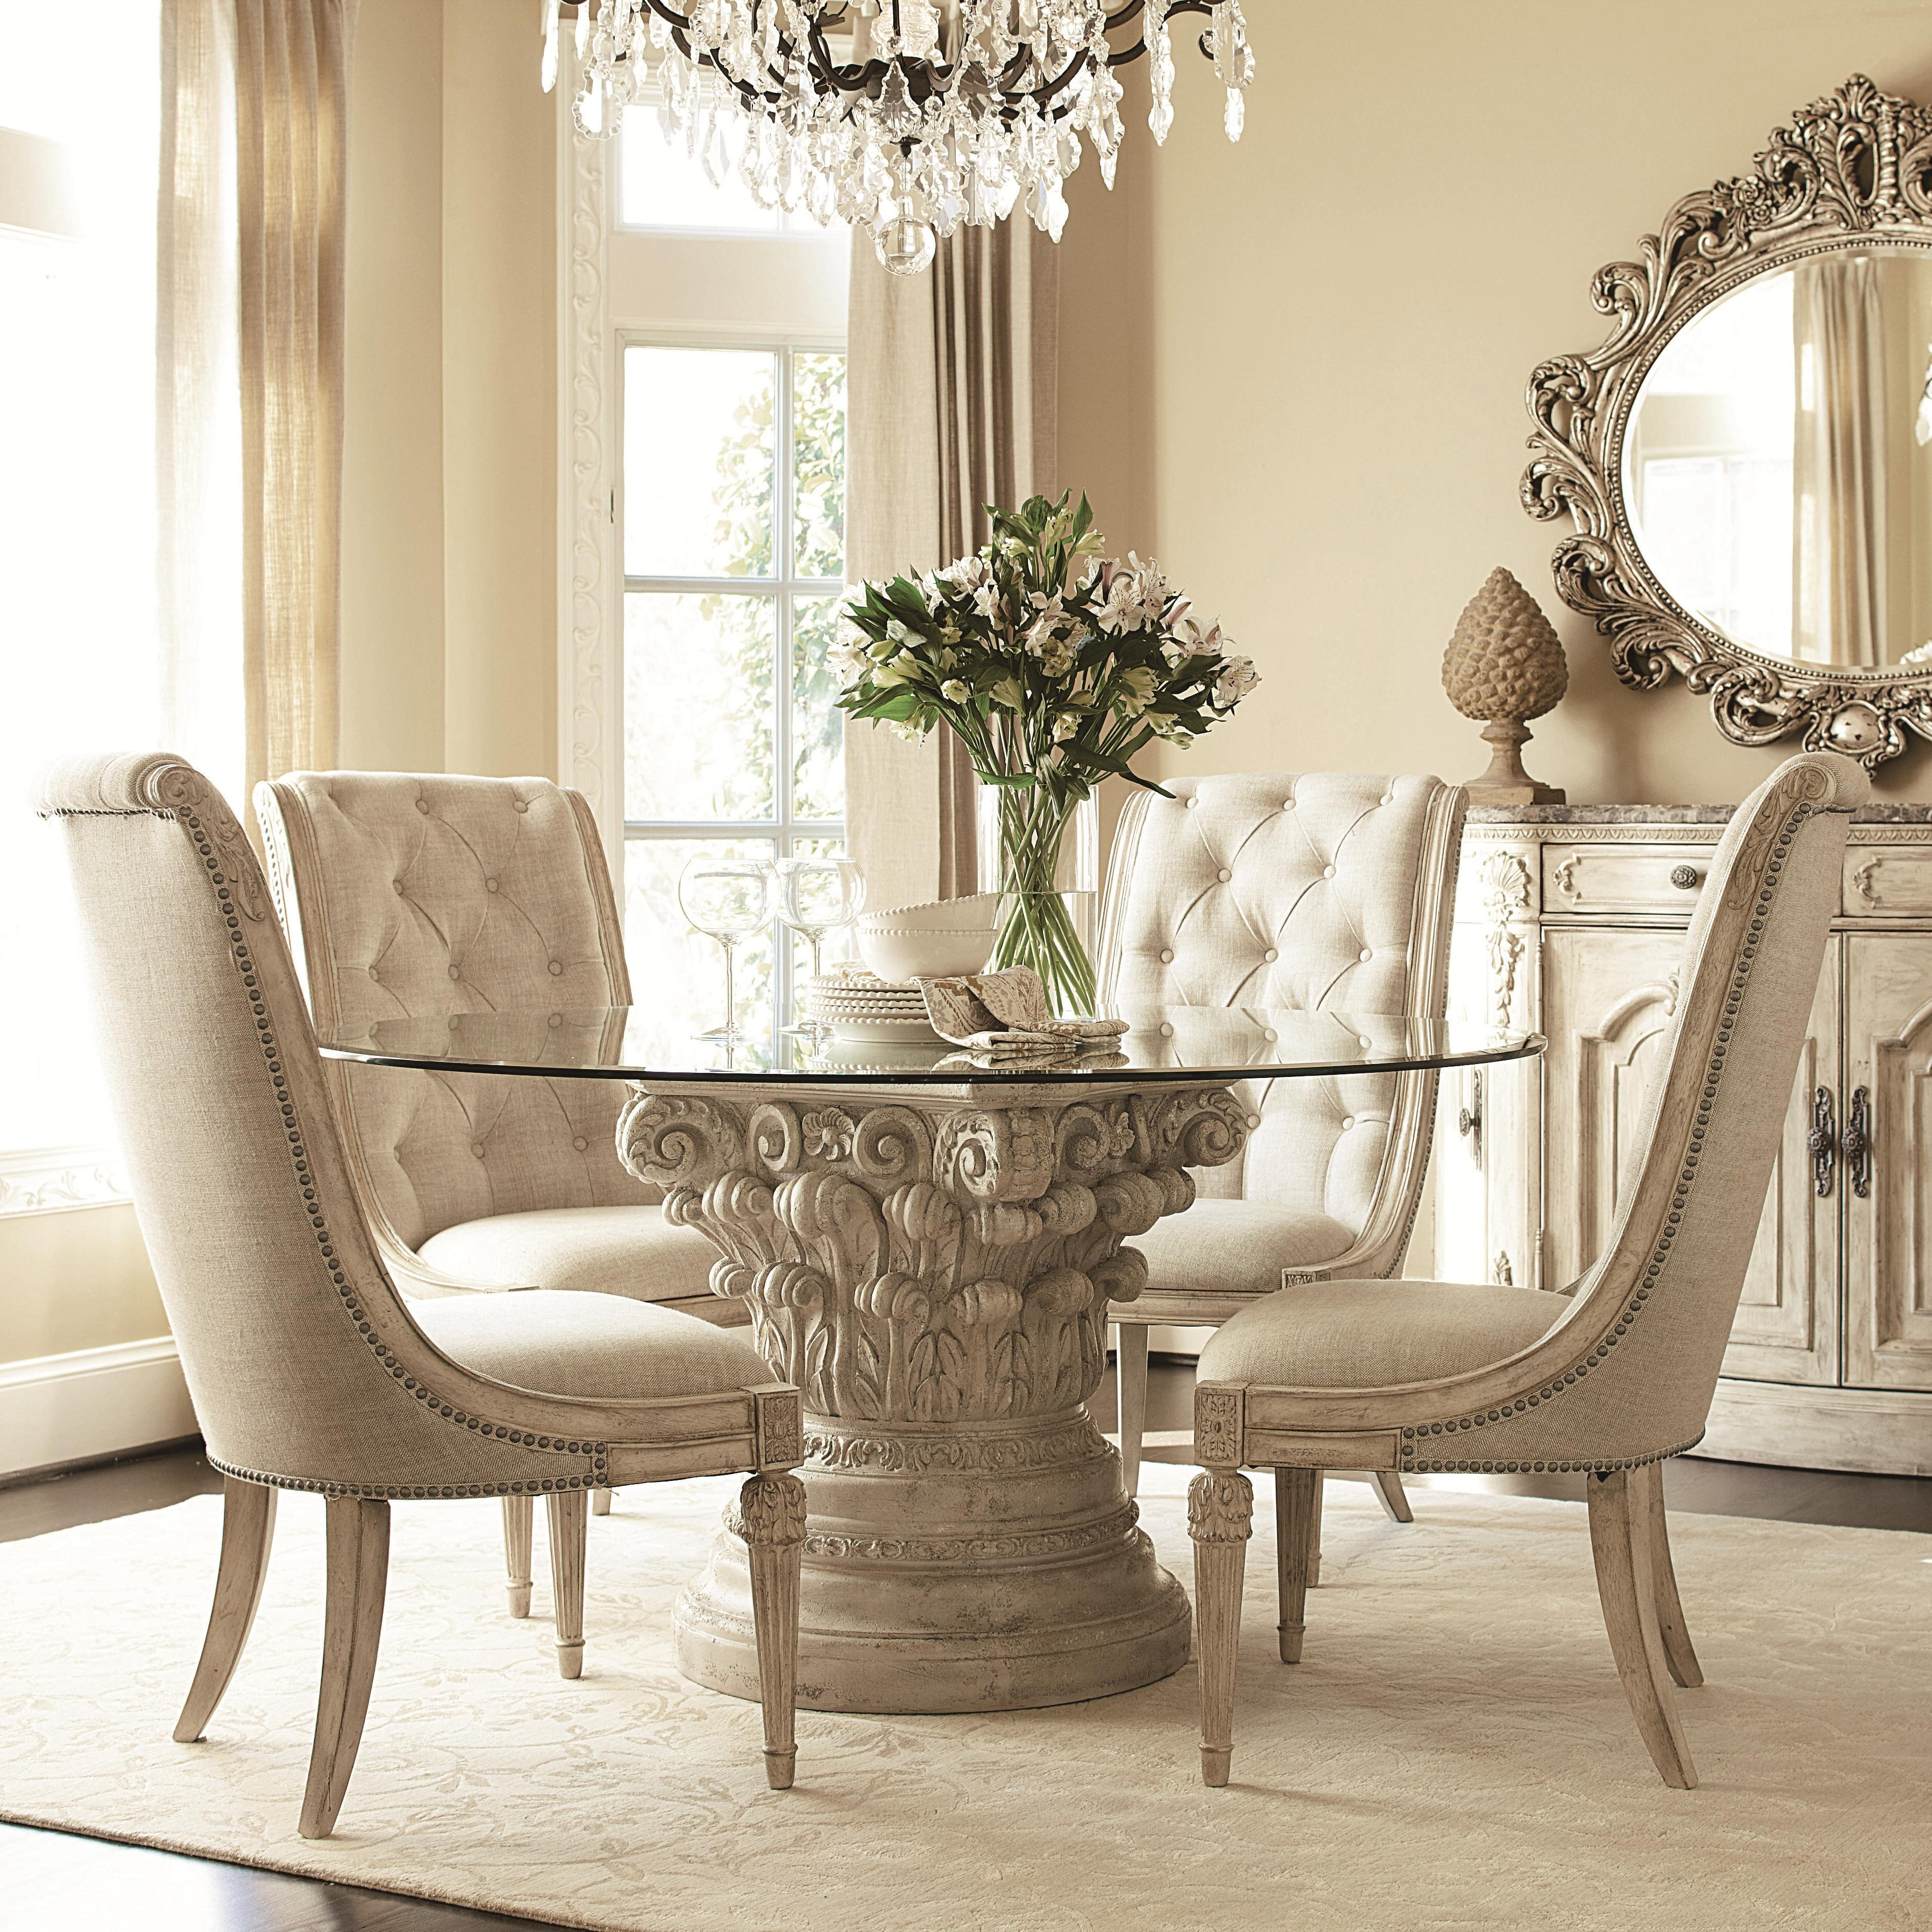 Caira Black 7 Piece Dining Sets With Arm Chairs & Diamond Back Chairs With Most Popular American Drew Jessica Mcclintock Home – The Boutique Collection  (View 10 of 16)